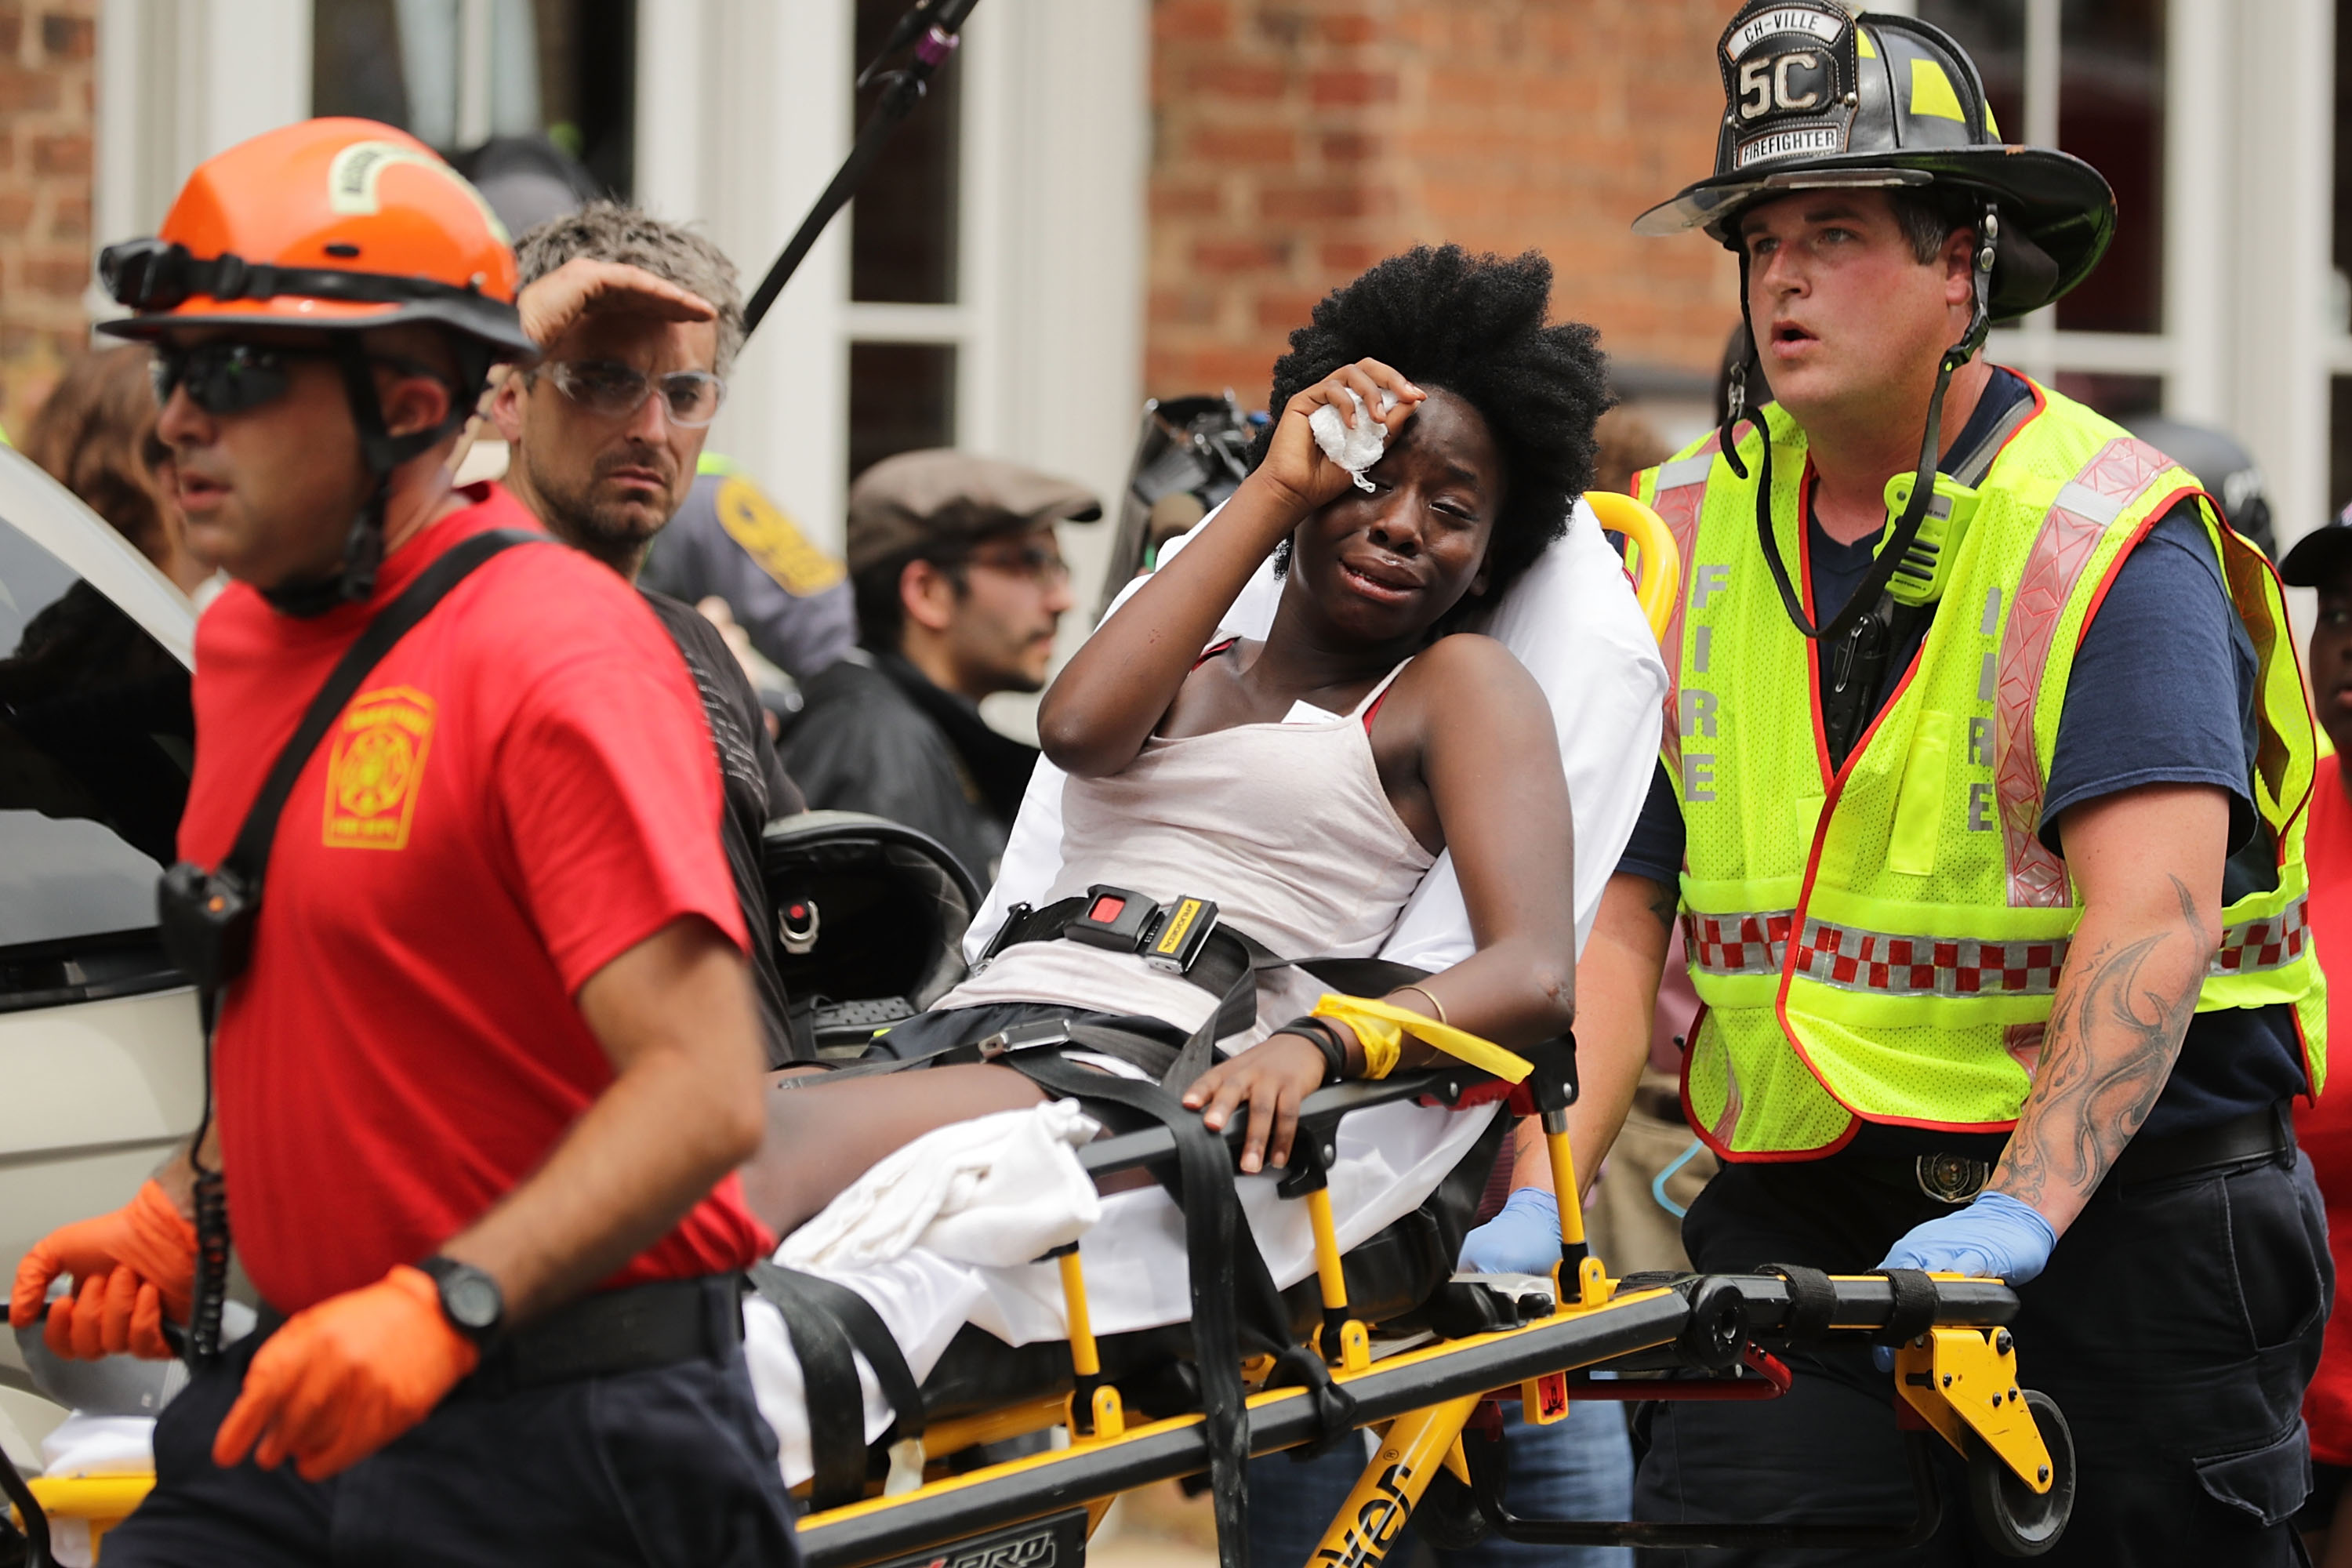 Aftermath Of Car Crashing Into Crowd Charlottesville